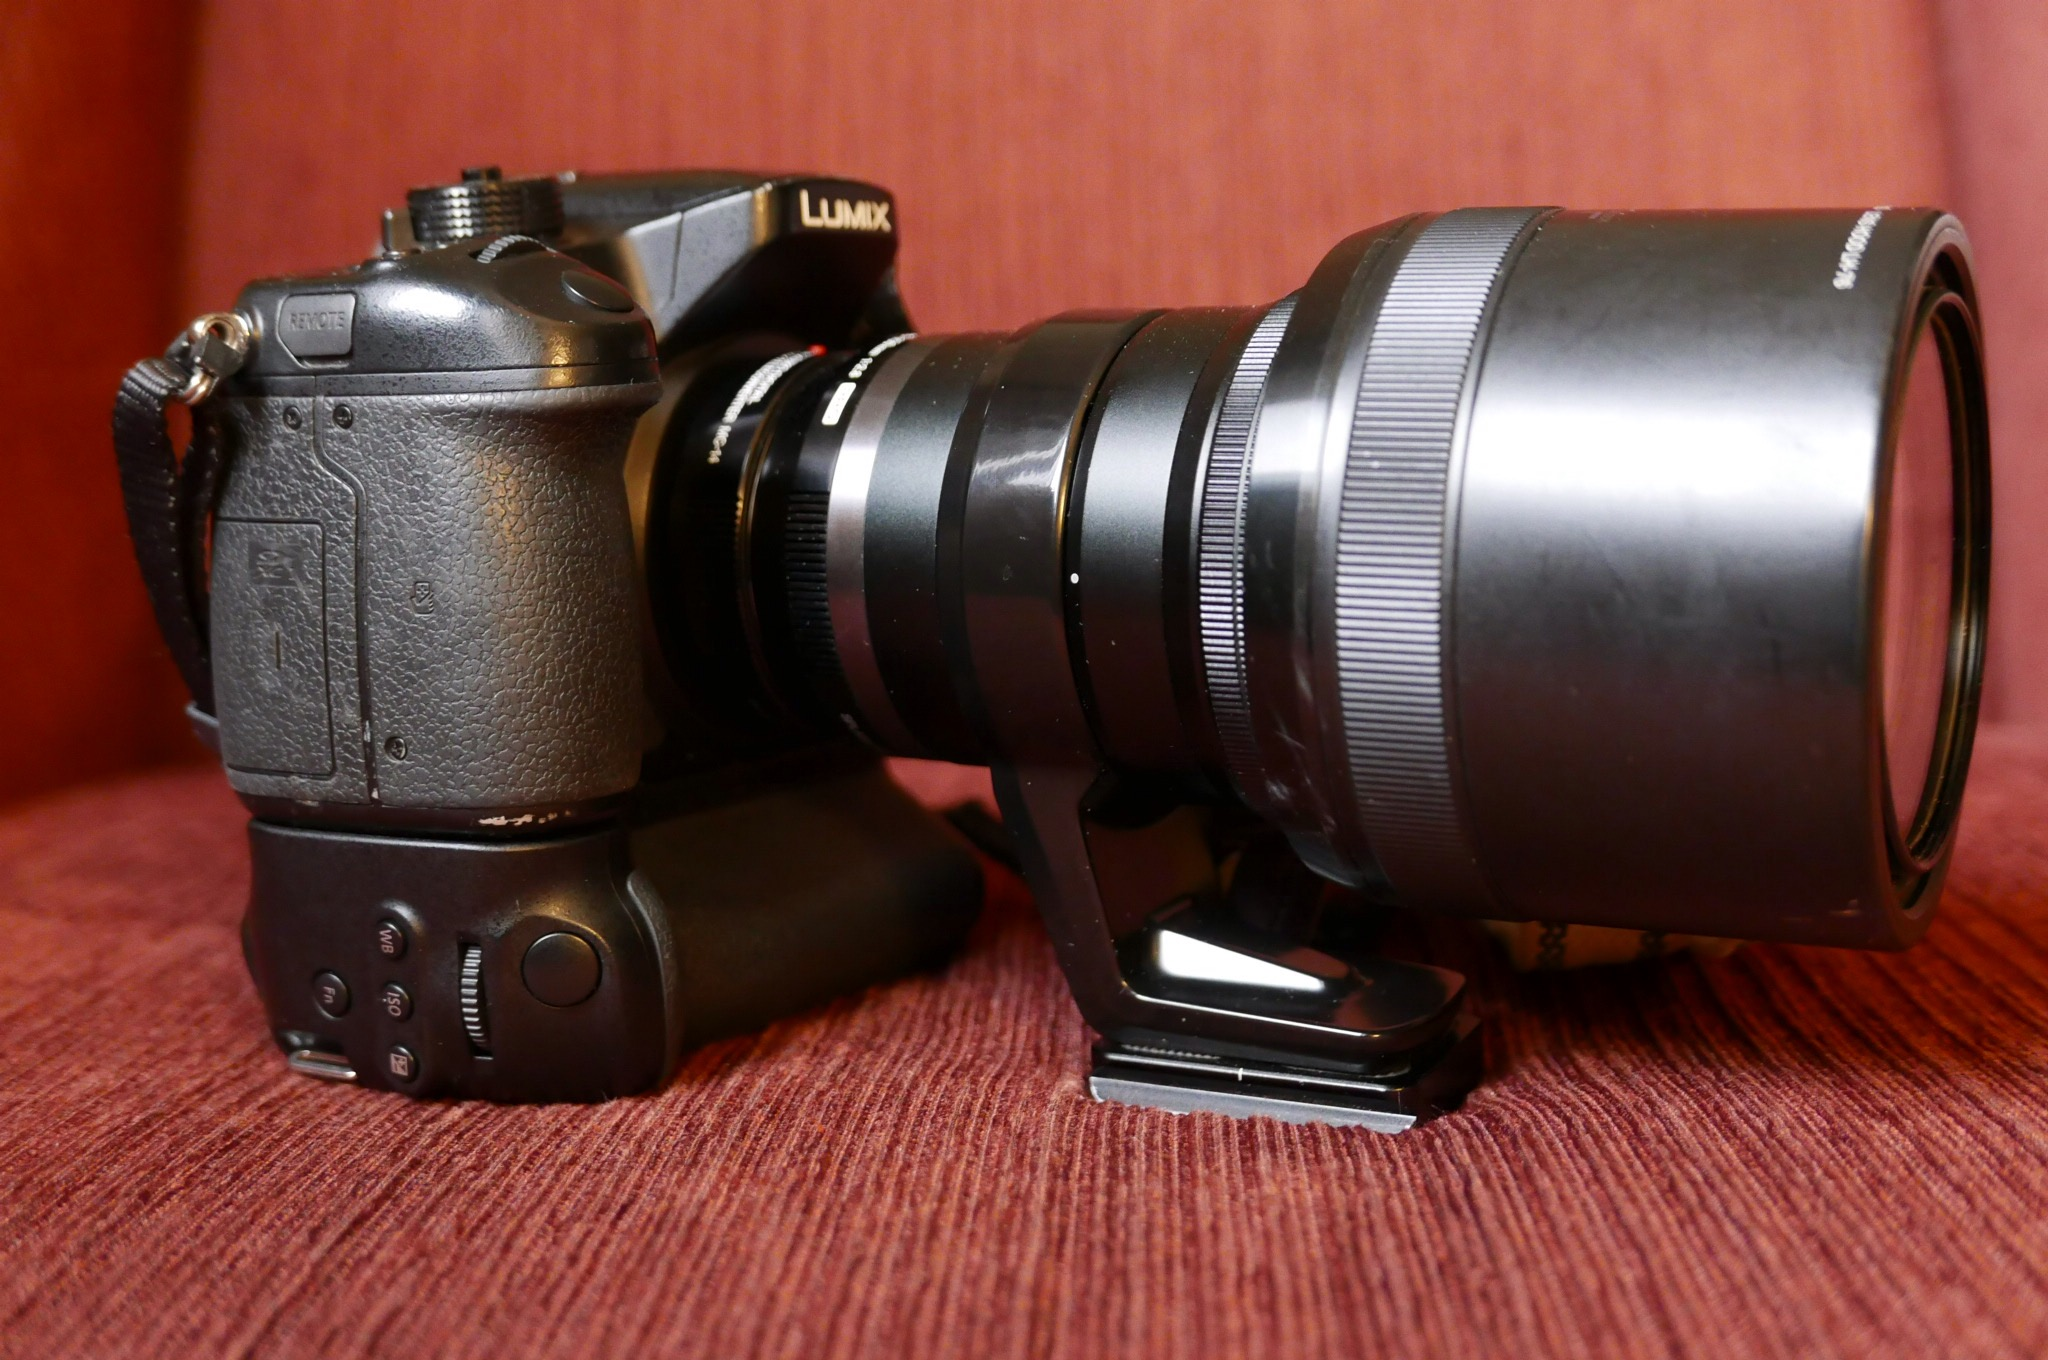 Lumix GH4 with the BGGH3 battery grip attached and the Olympus 40-150mm F/2.8 lens